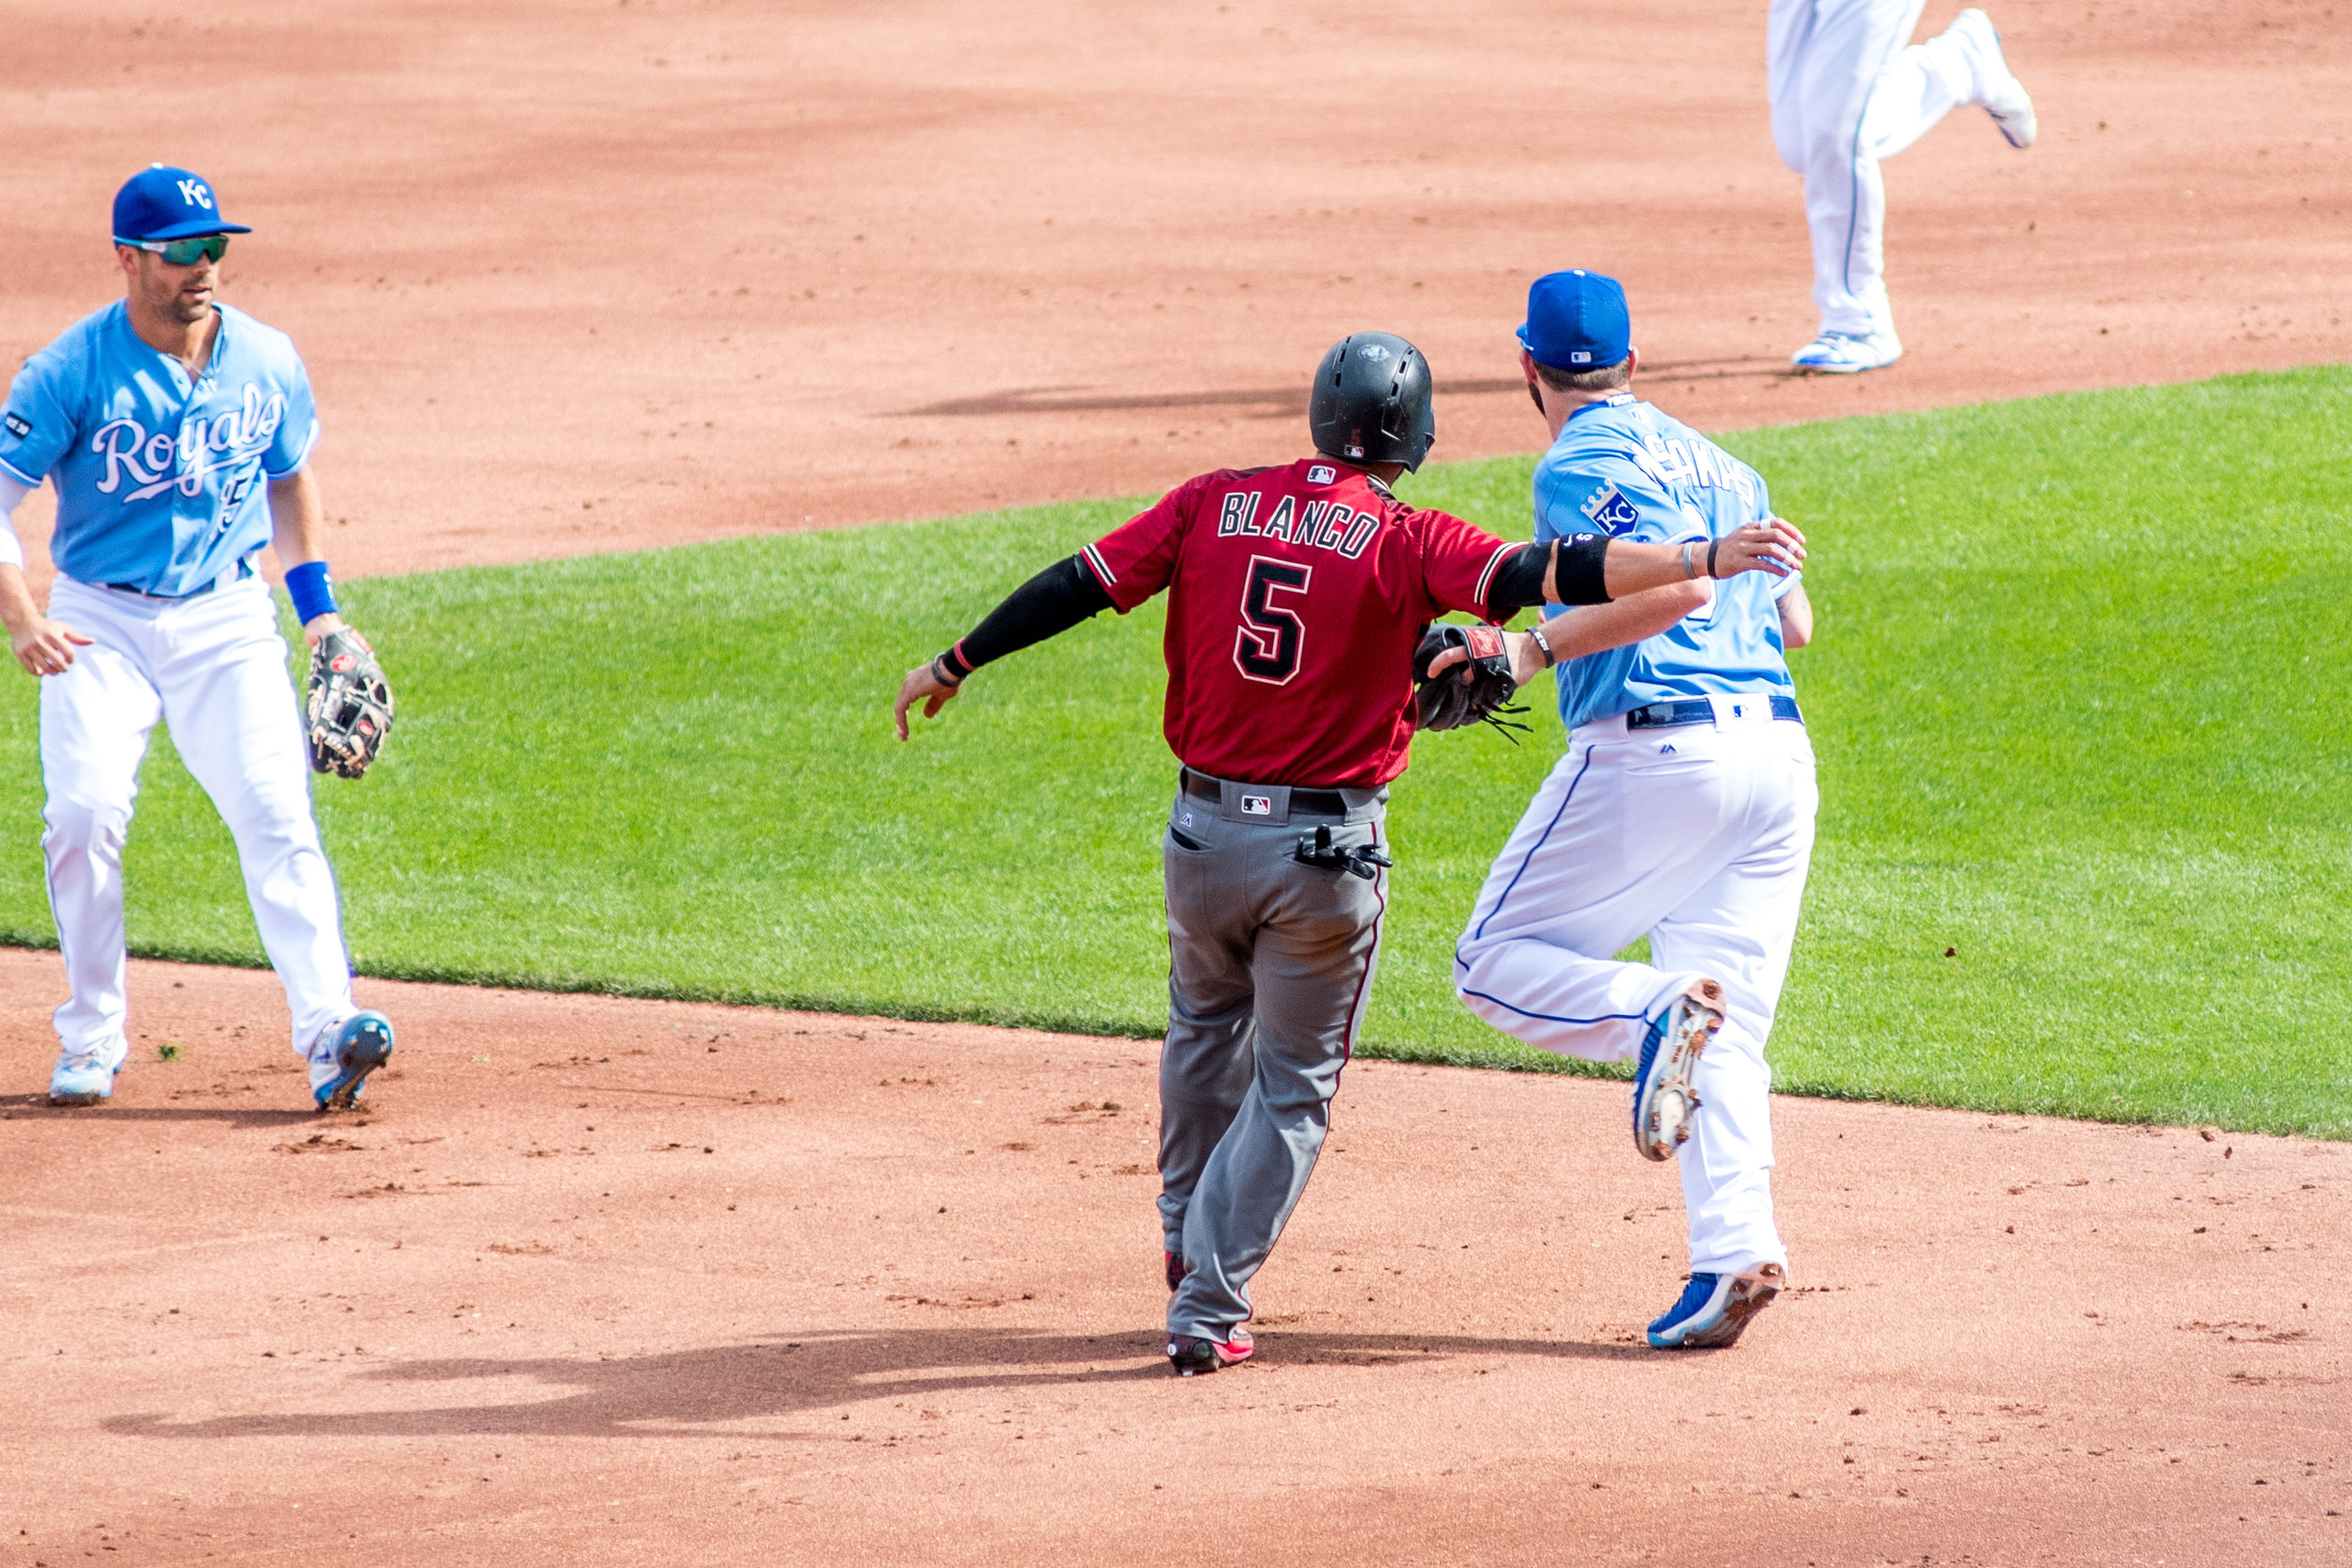 The end of the pickle was Mike Moustakas tagging out the Diamondbacks runner. One of the things that made the Royals so much fun to watch the last few years was their commitment to defense. The images in this series are a great way to remember that!